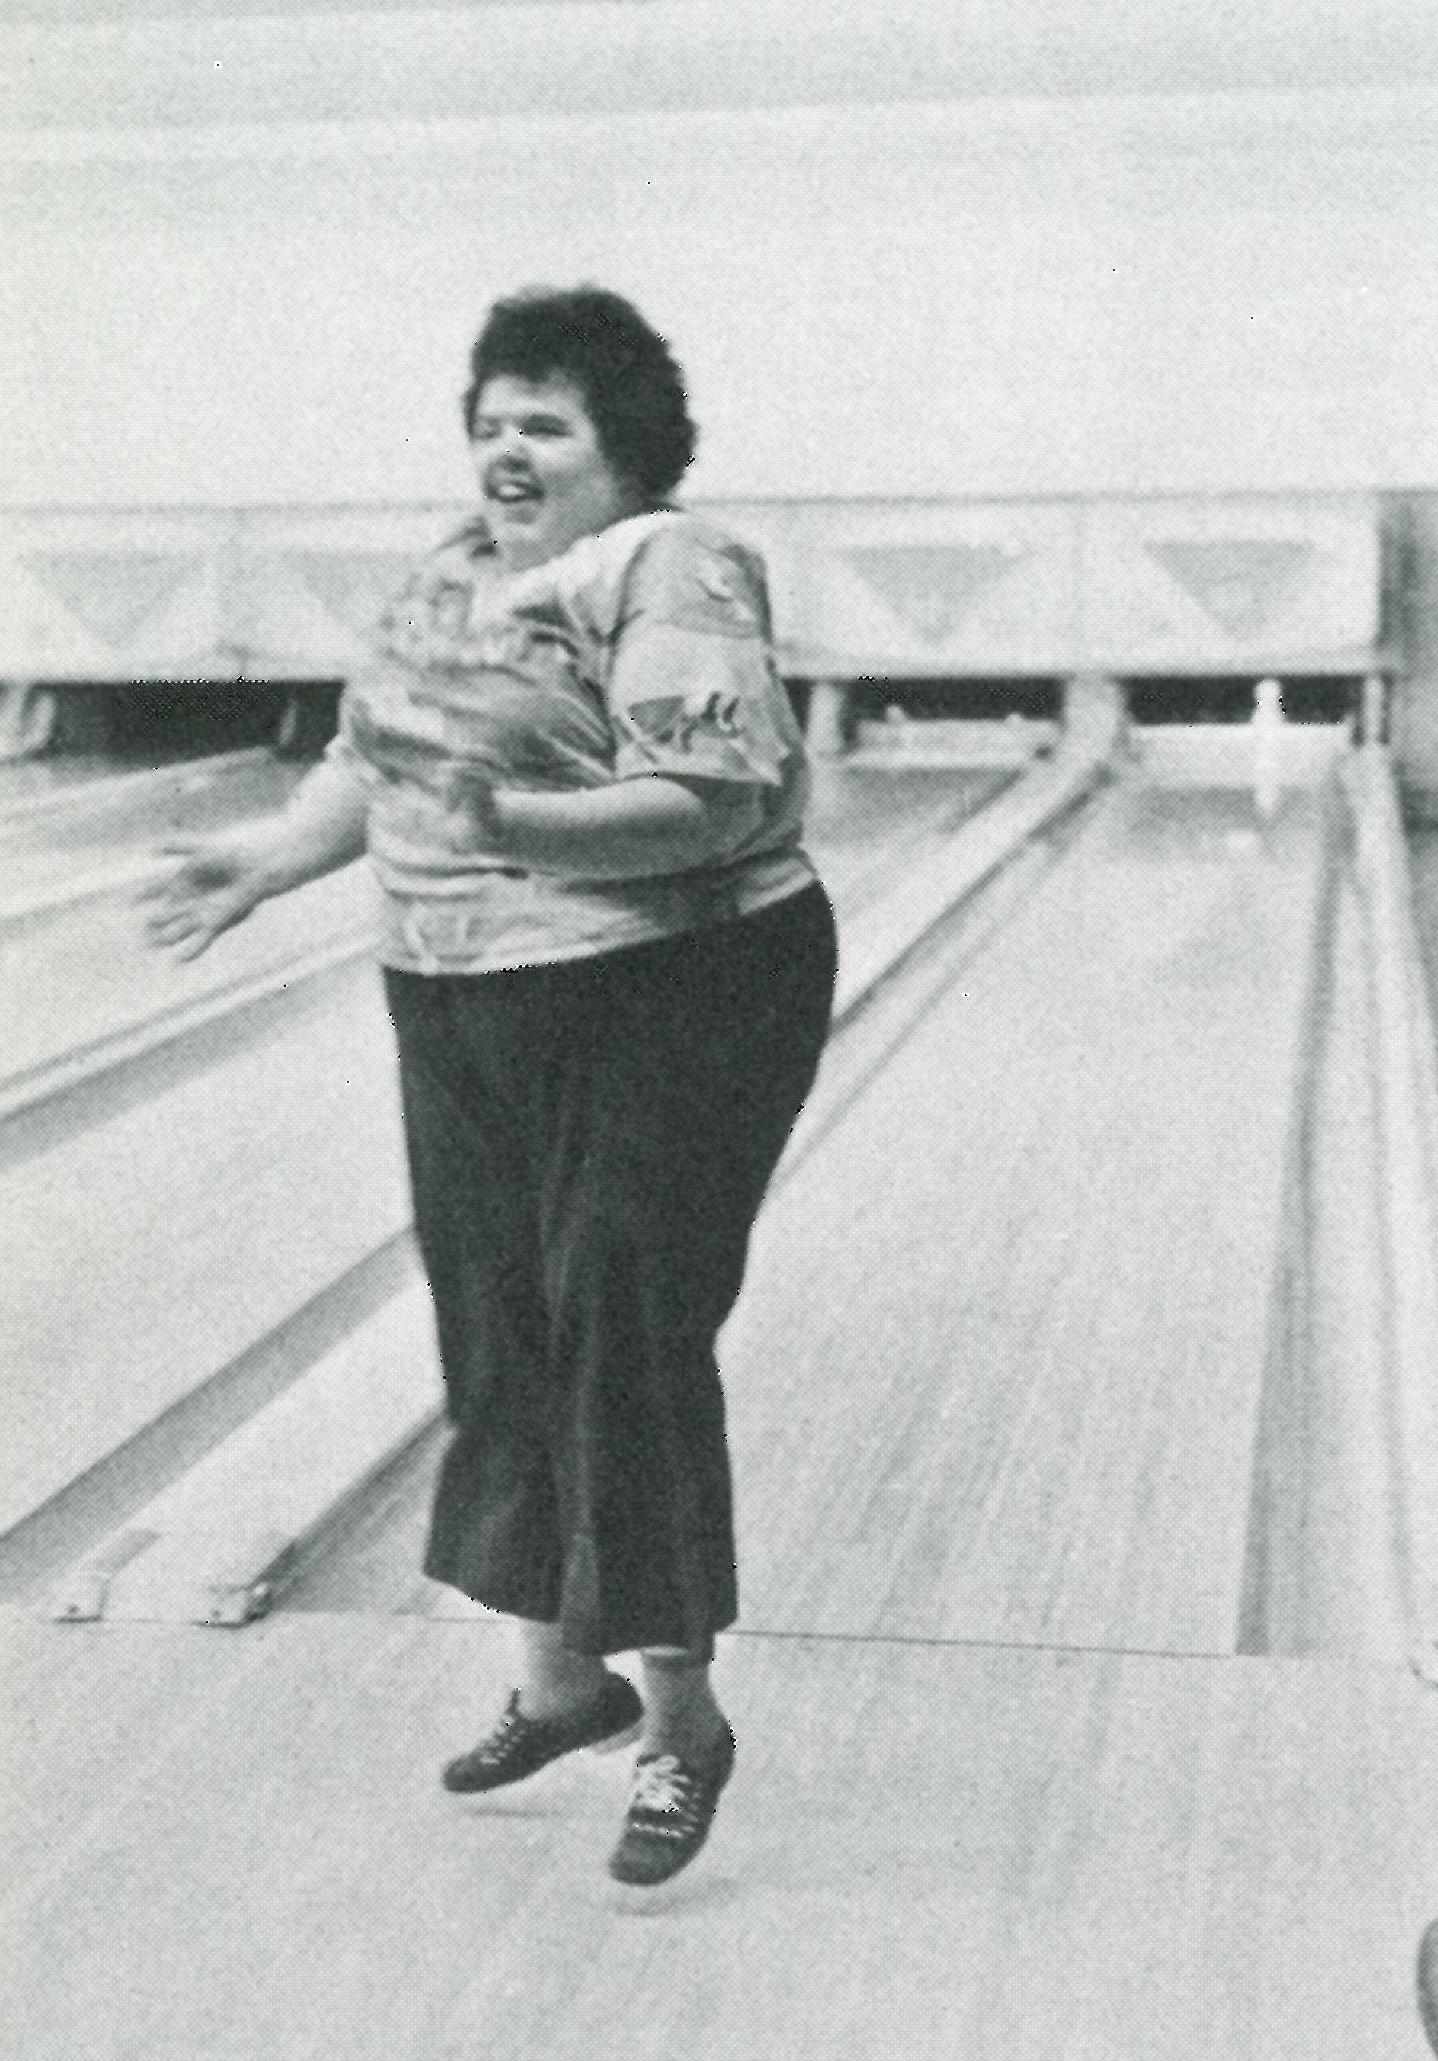 76 student bowling